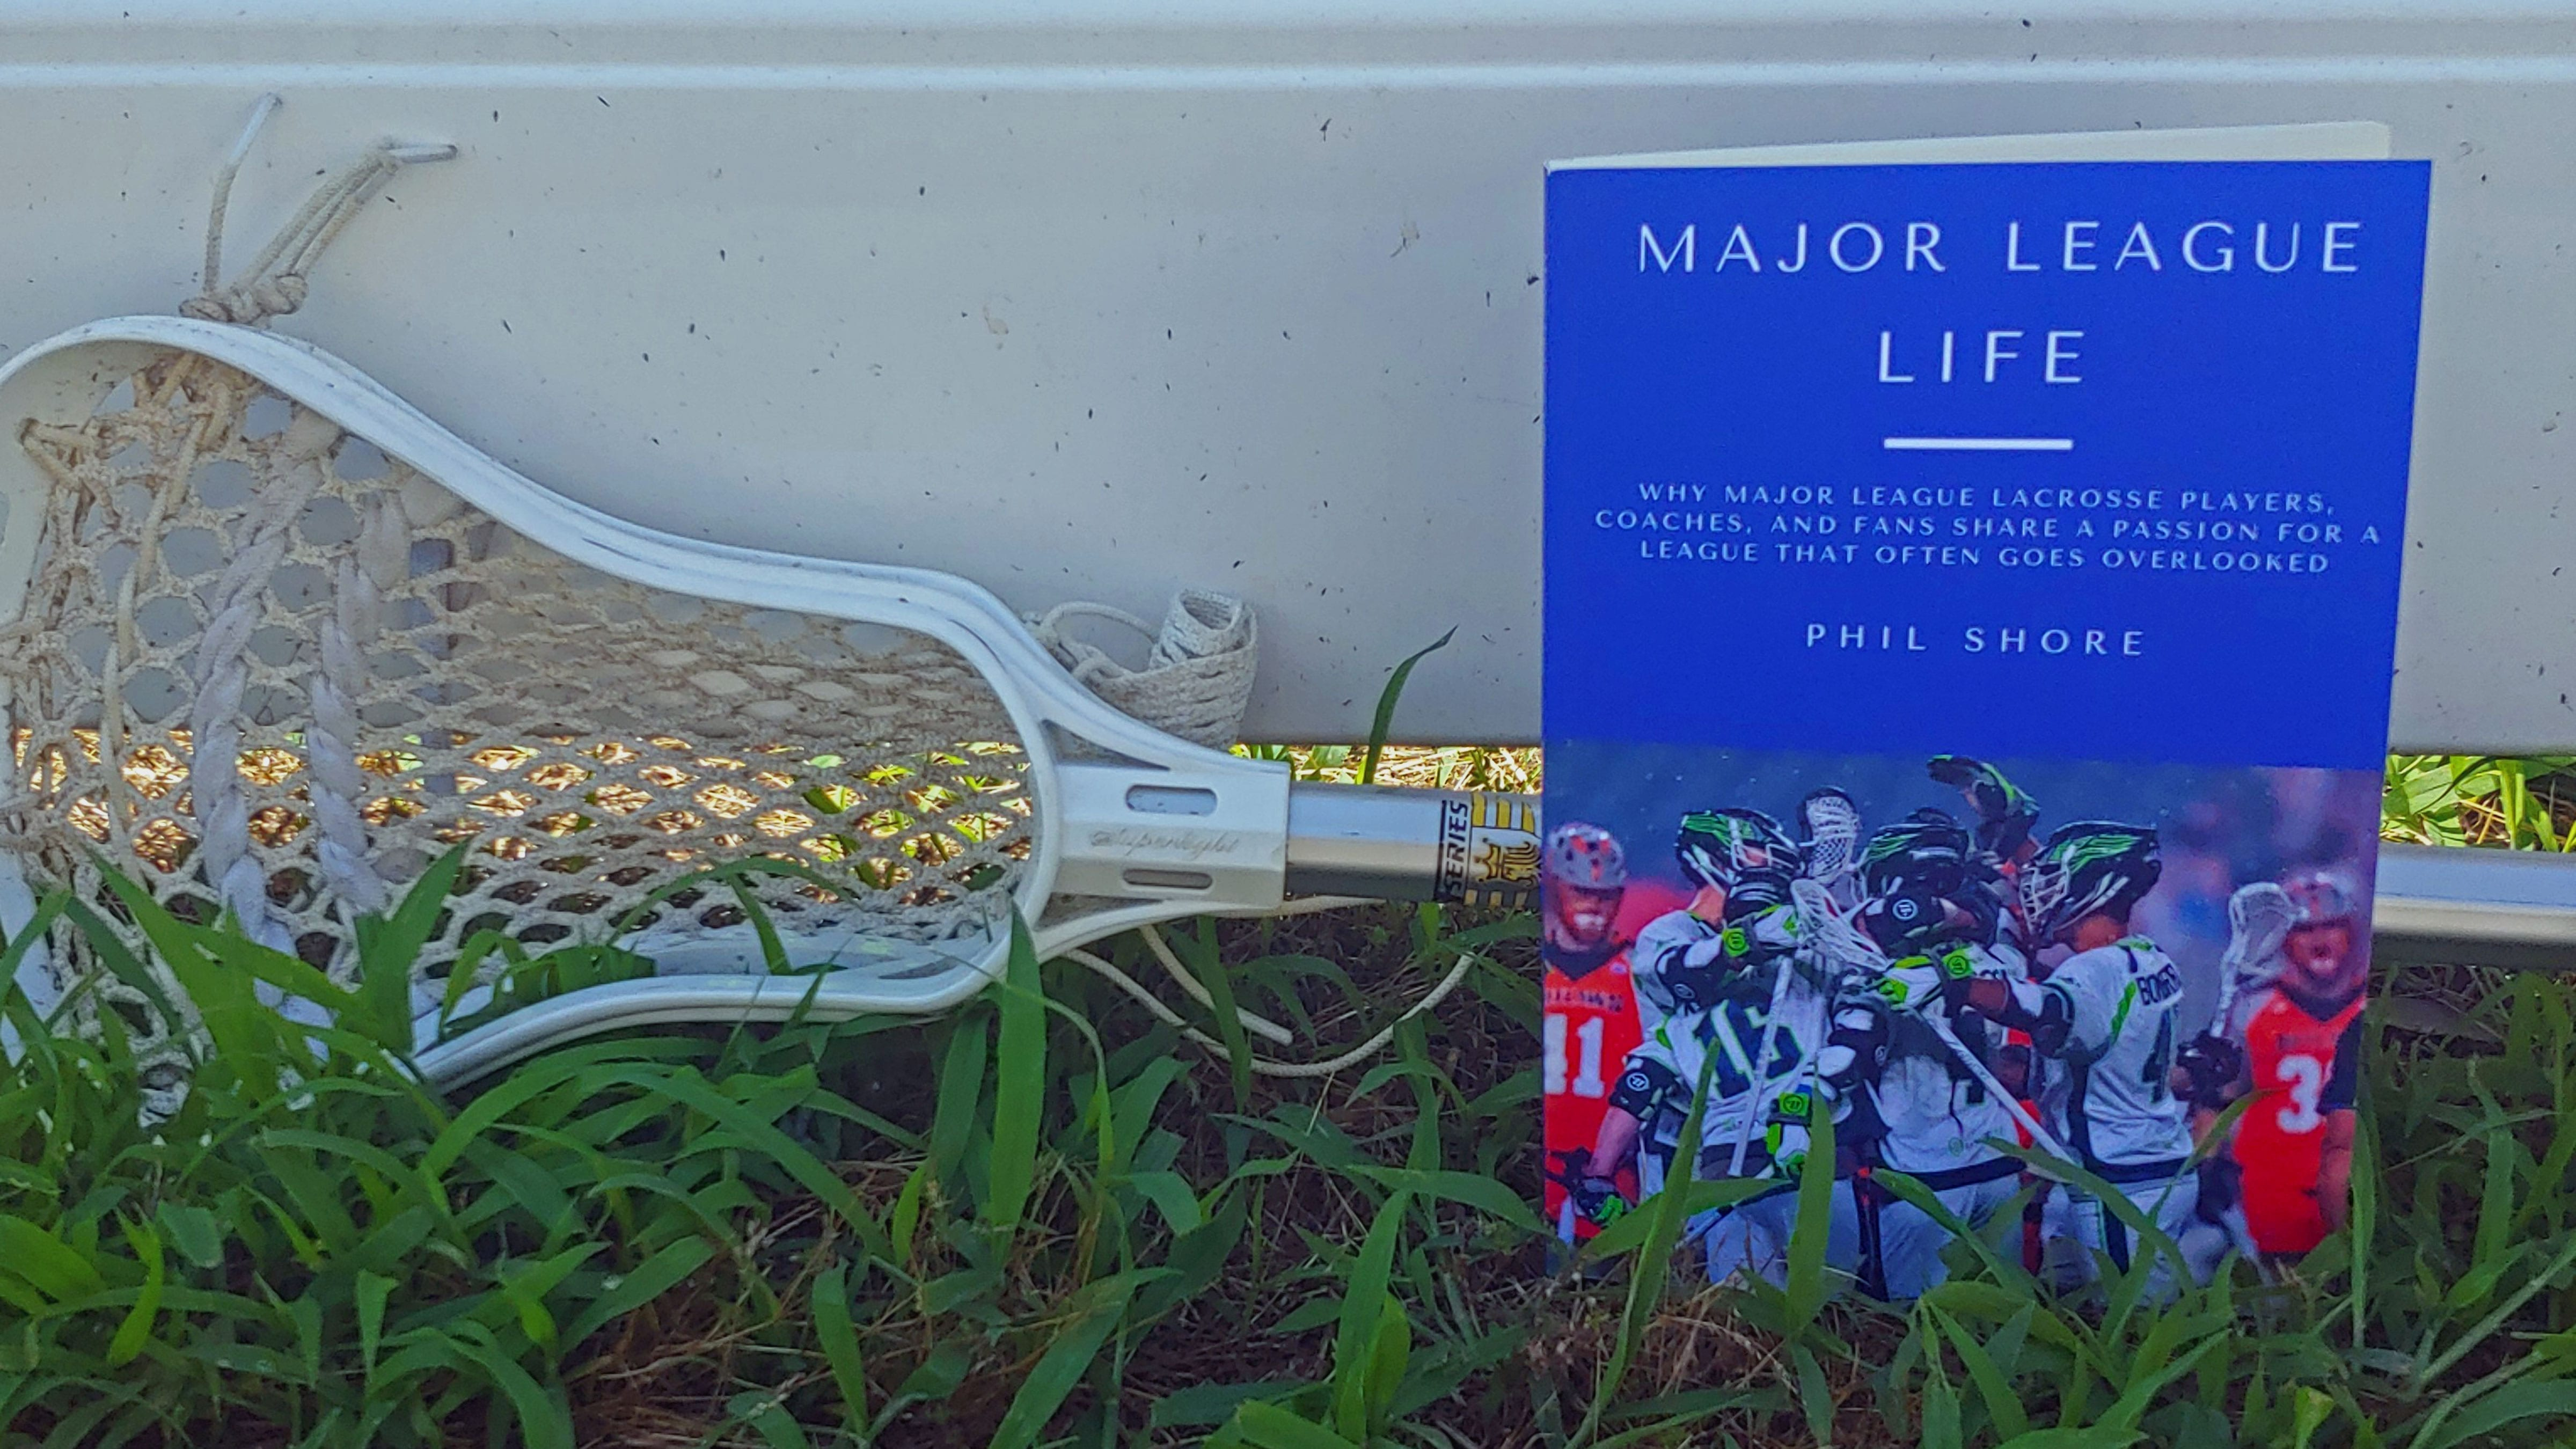 Major League Life - Why I Wrote a Book About Lacrosse